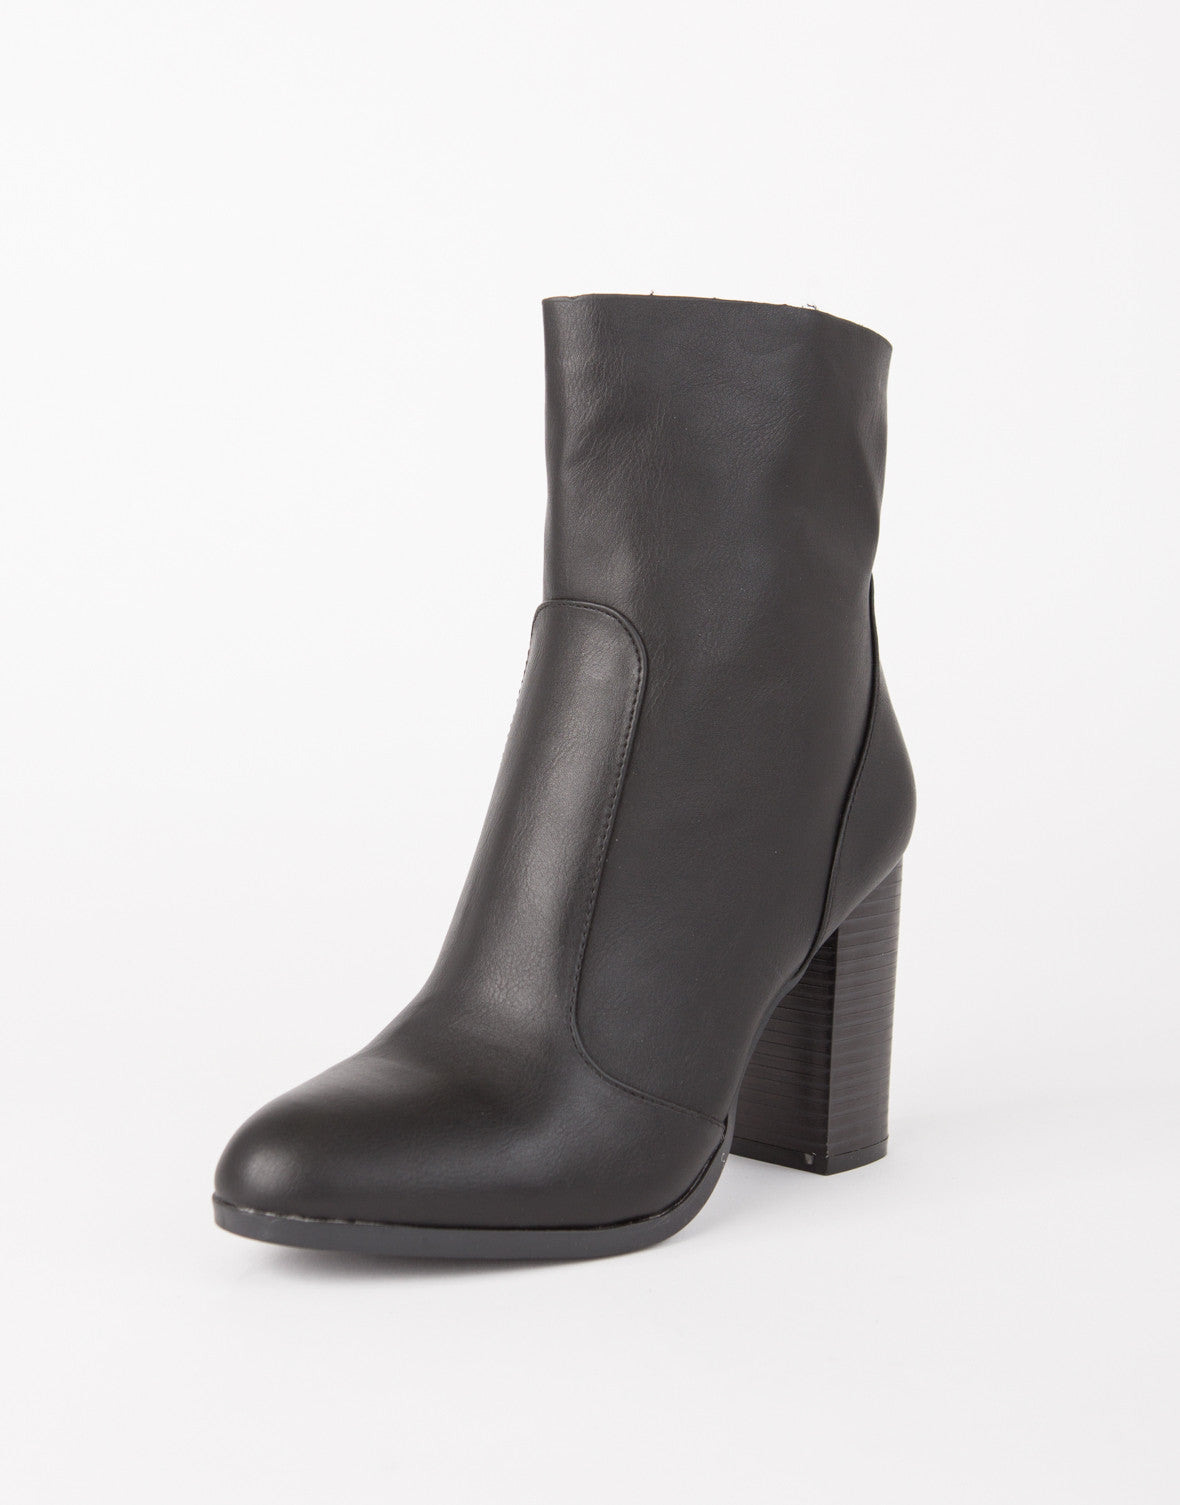 Stitch Trim Leather Boots